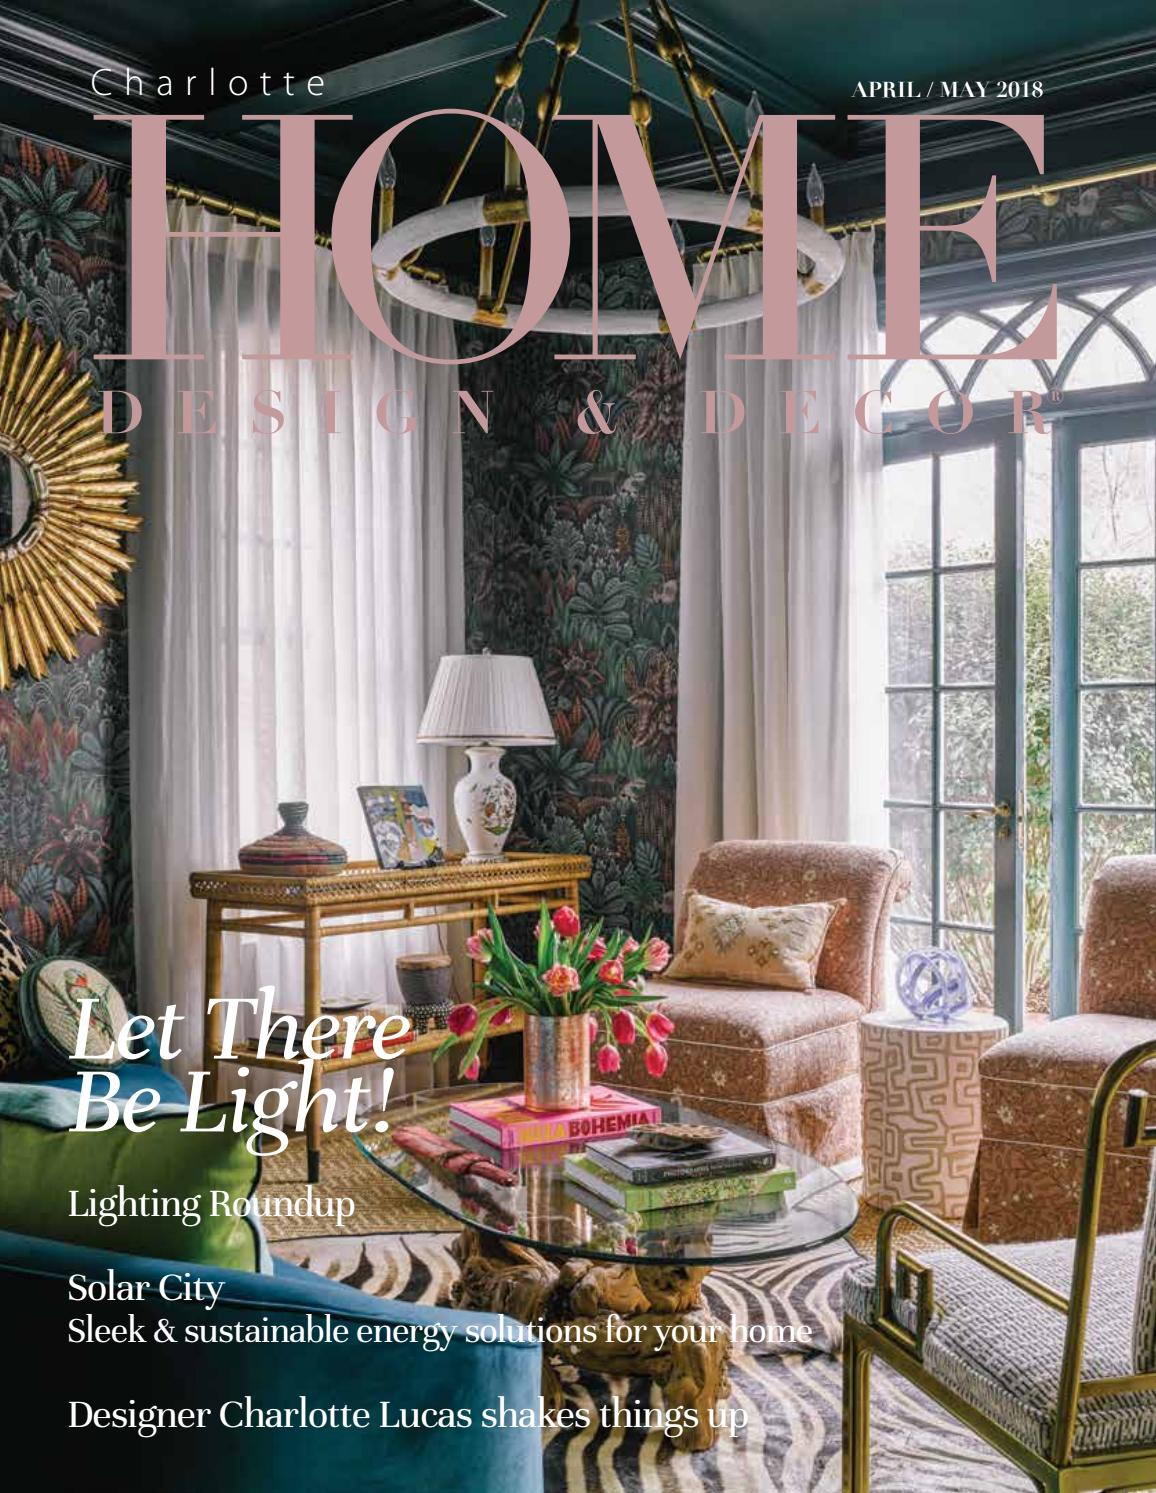 decor and design 9 art deco style emerald interiors blog Charlotte April May 2018 by Home Design u0026 Decor Magazine - issuu